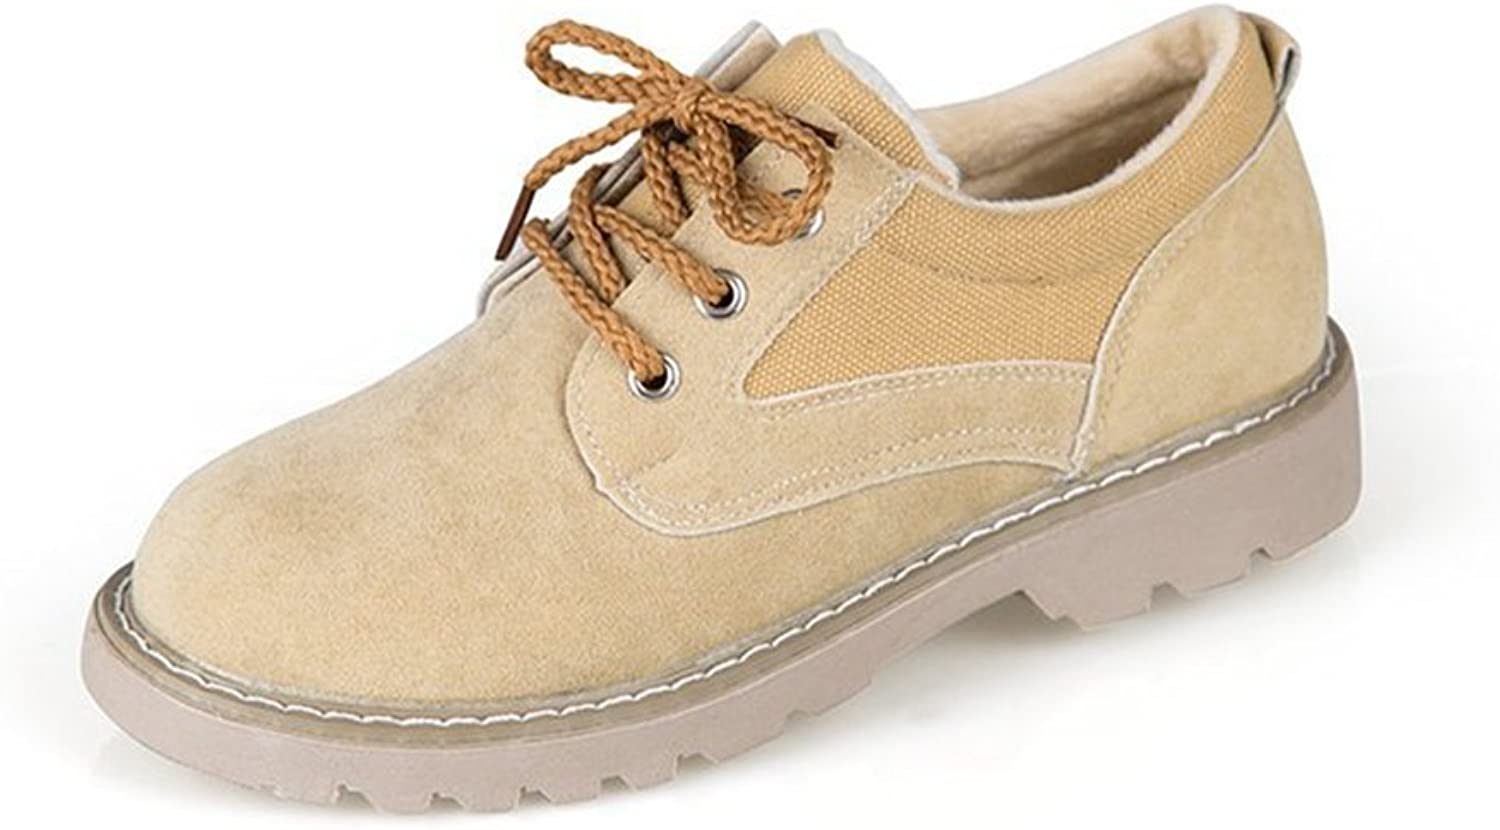 T-JULY Women's Classic Oxfords shoes - Comfortable Lace-up Low Wedge Round Toe Mubuck shoes